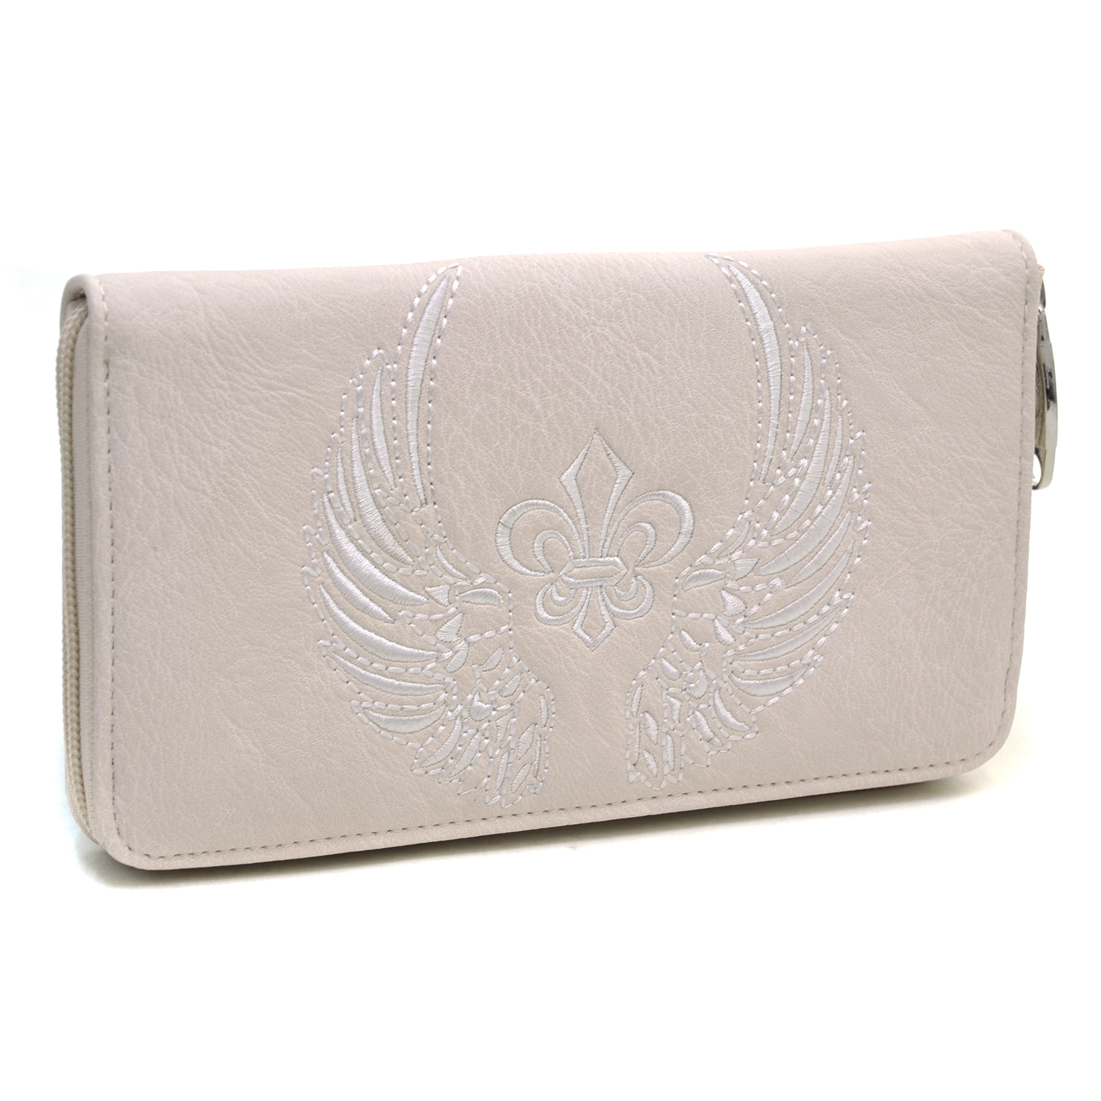 Ustyle Western Fleur de Lis and Wings Emblem Zip  Around Wallet